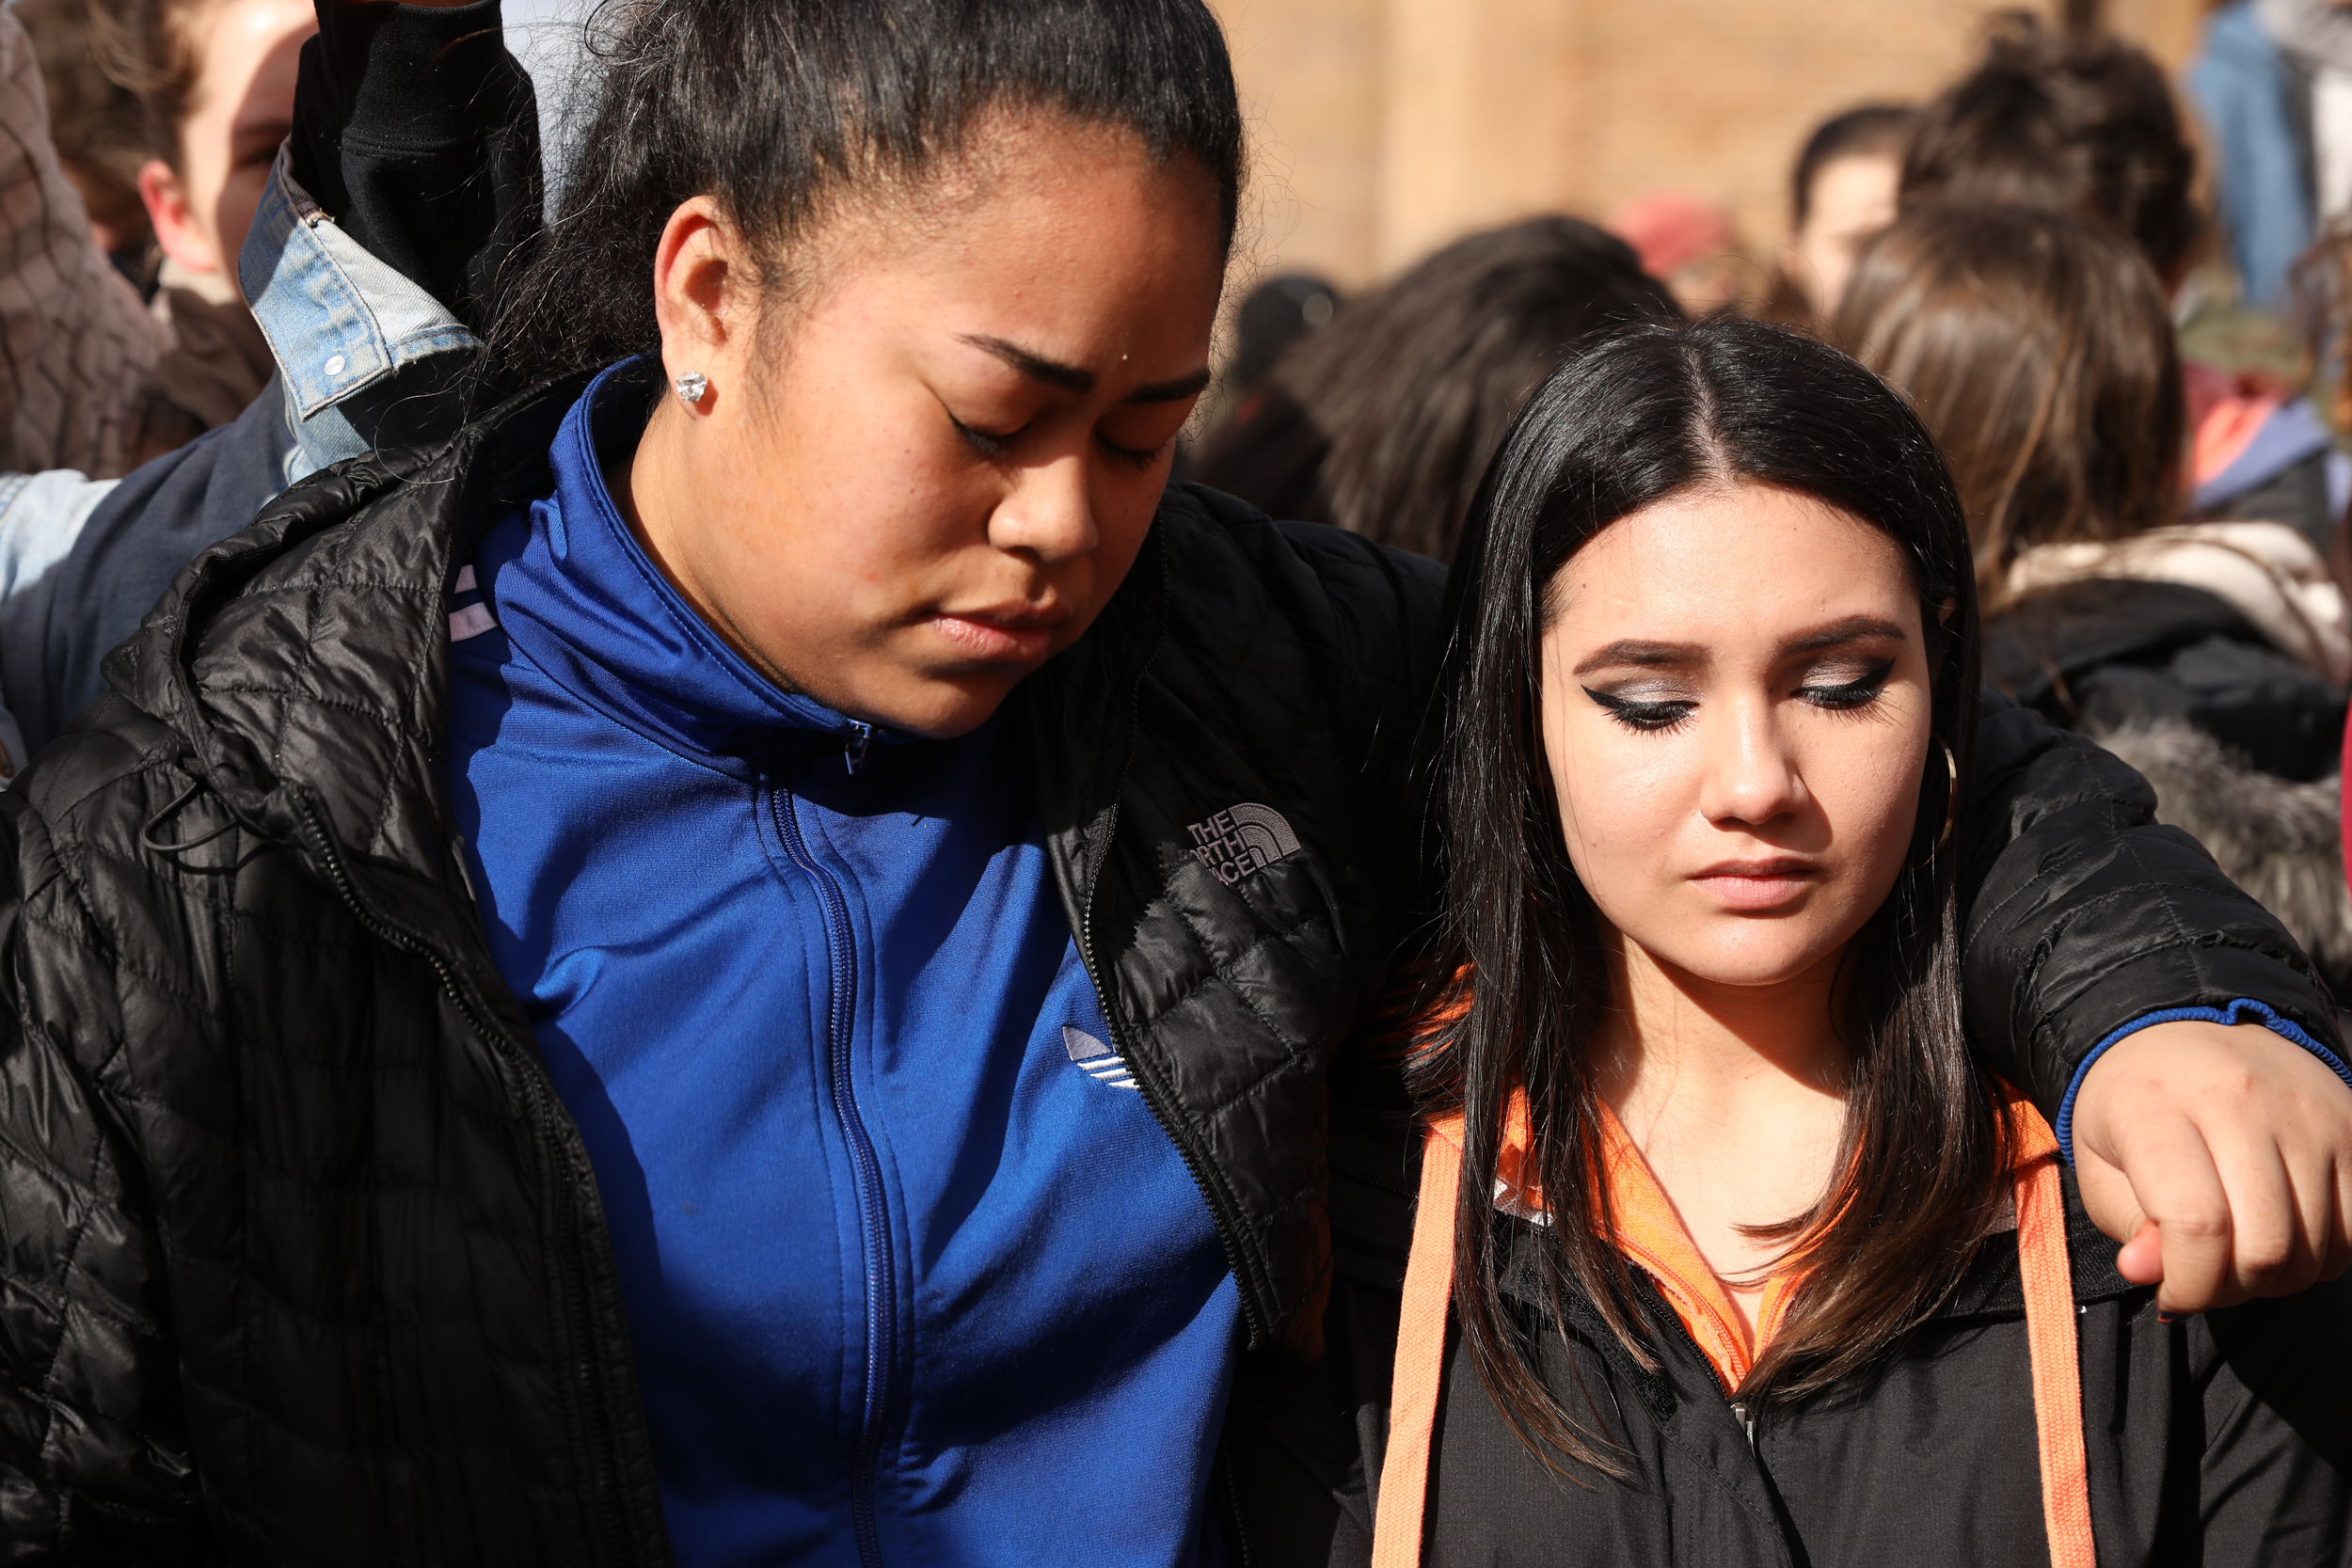 (From left) Nathan Hale High School seniors Precious Anetipa and Melanie Remmers embrace each other during a moment of silence in honor of Parkland High School shooting victims at University of Washington's Red Square, Mar. 14, 2018. (Photo by Matt M. McKnight/Crosscut)